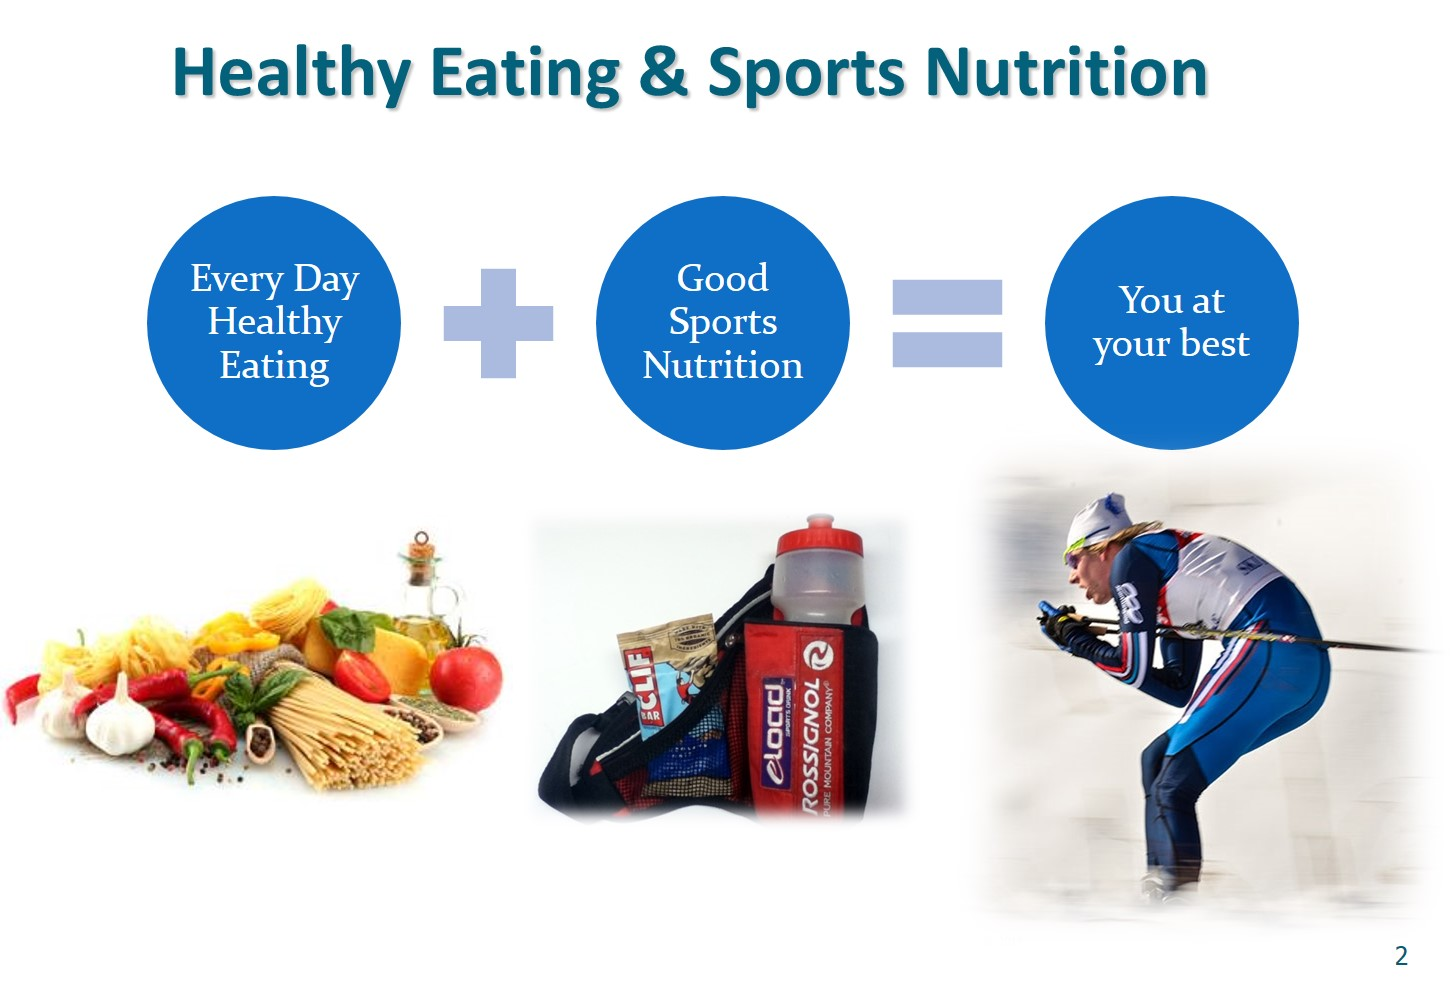 nutrition strategies for health  athletic performance  sheila kealey overallnutrition